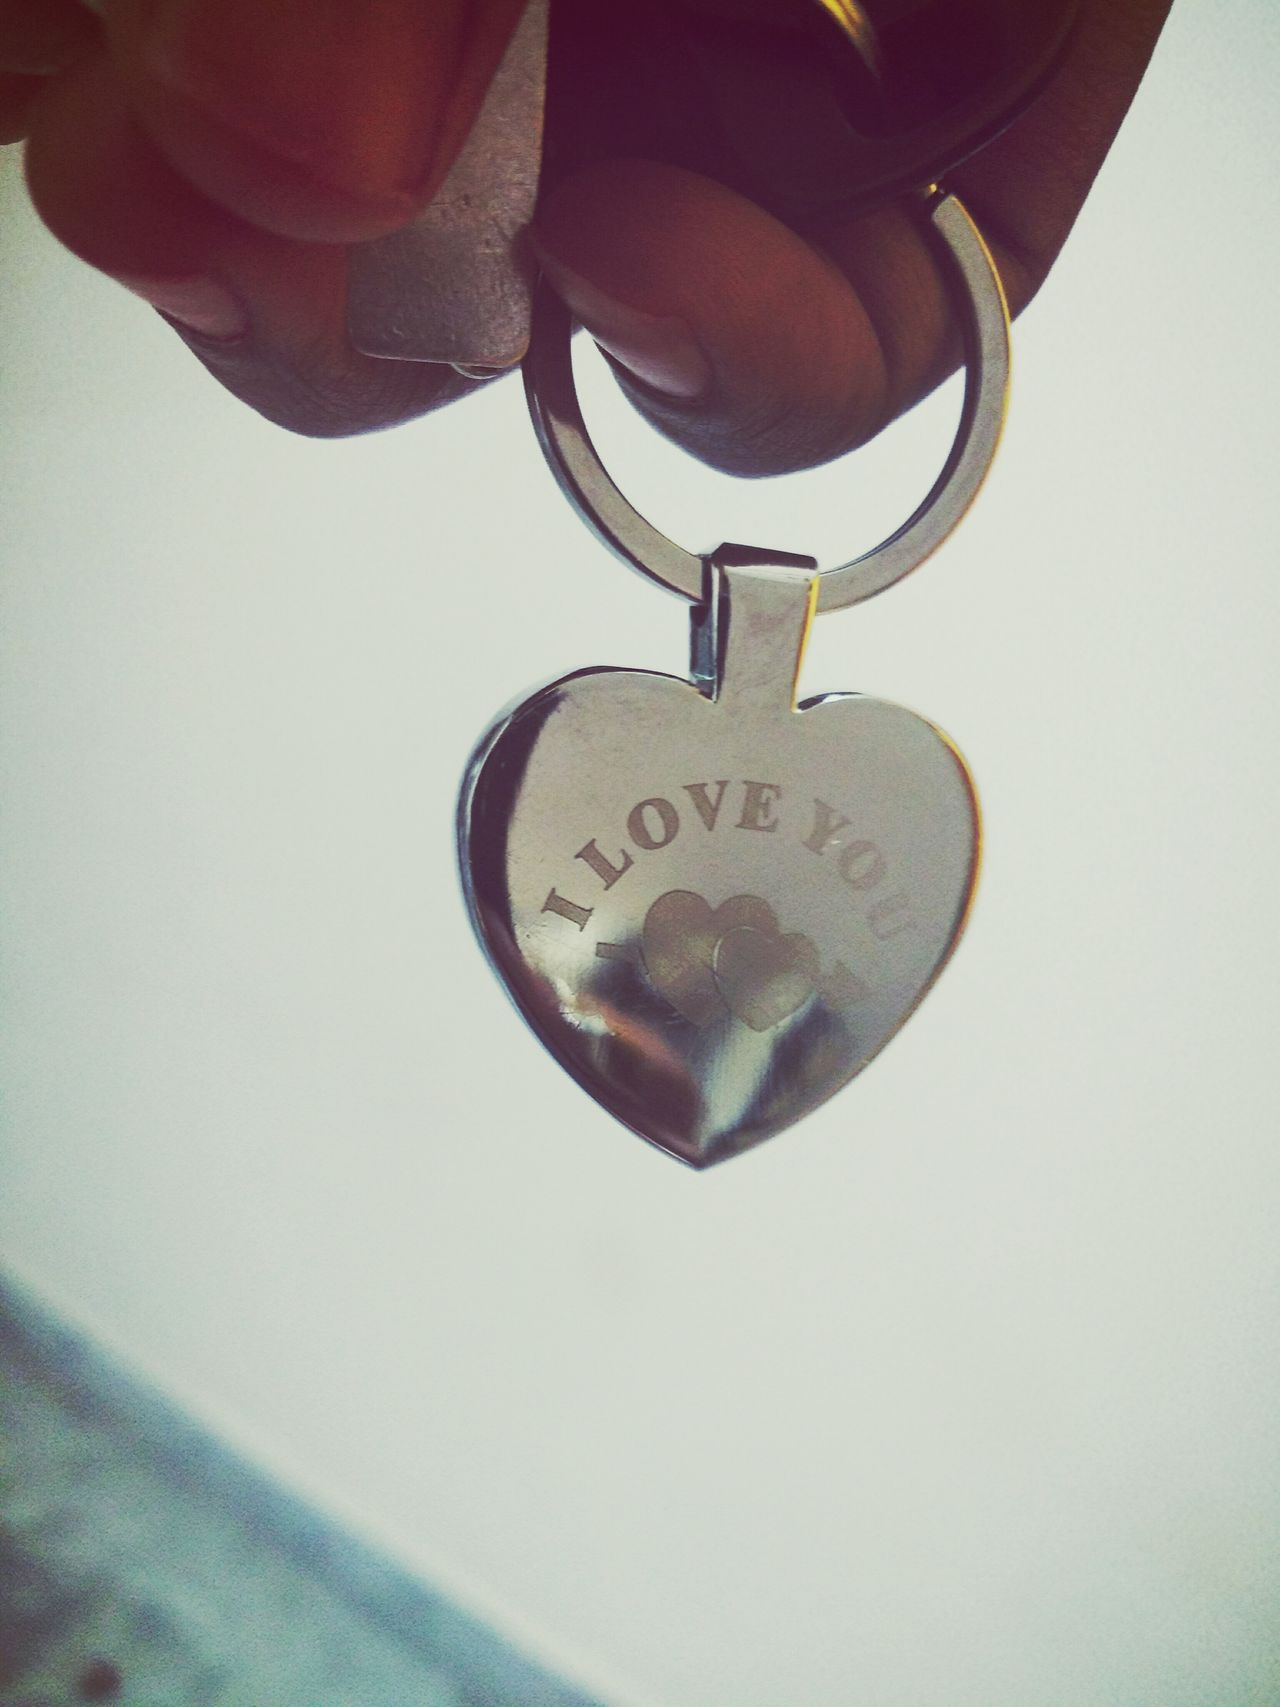 Close-up Human Hand Day Heart ❤ ı Love You Key Chain 😍😌😊